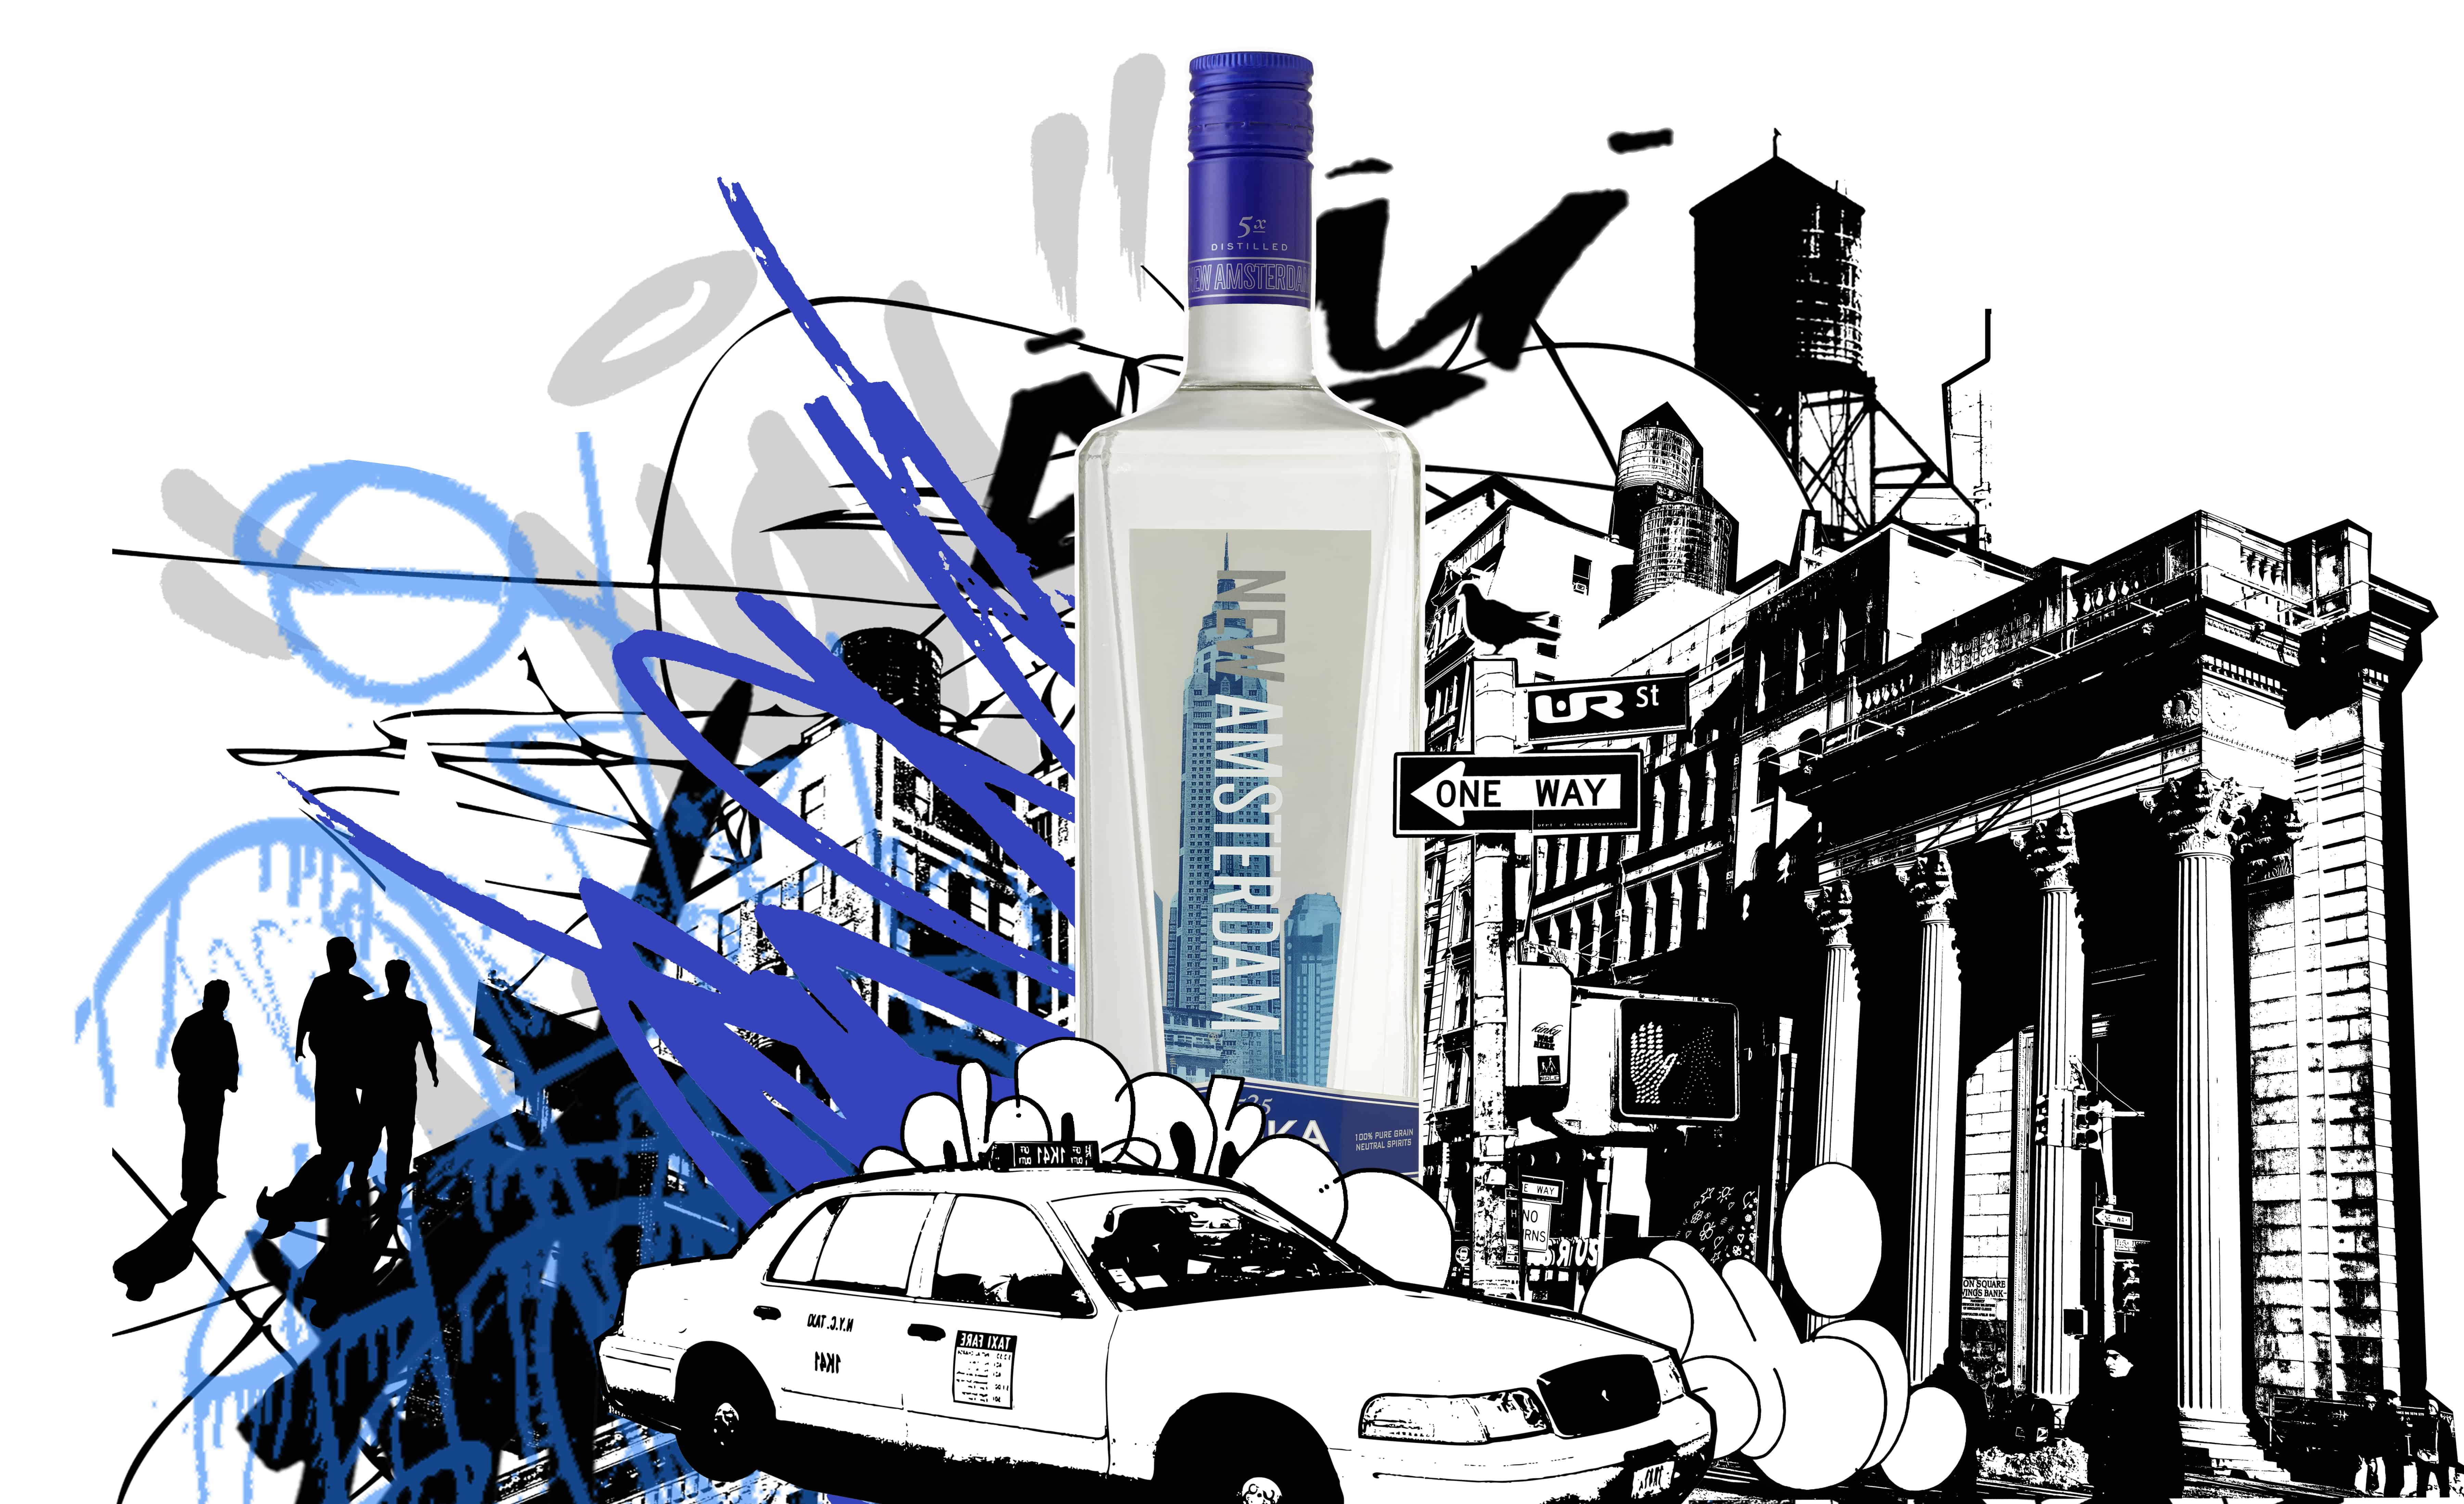 """New Amsterdam Vodka """"It's Your Town"""" MAN'edged Mag with work by UR New York"""